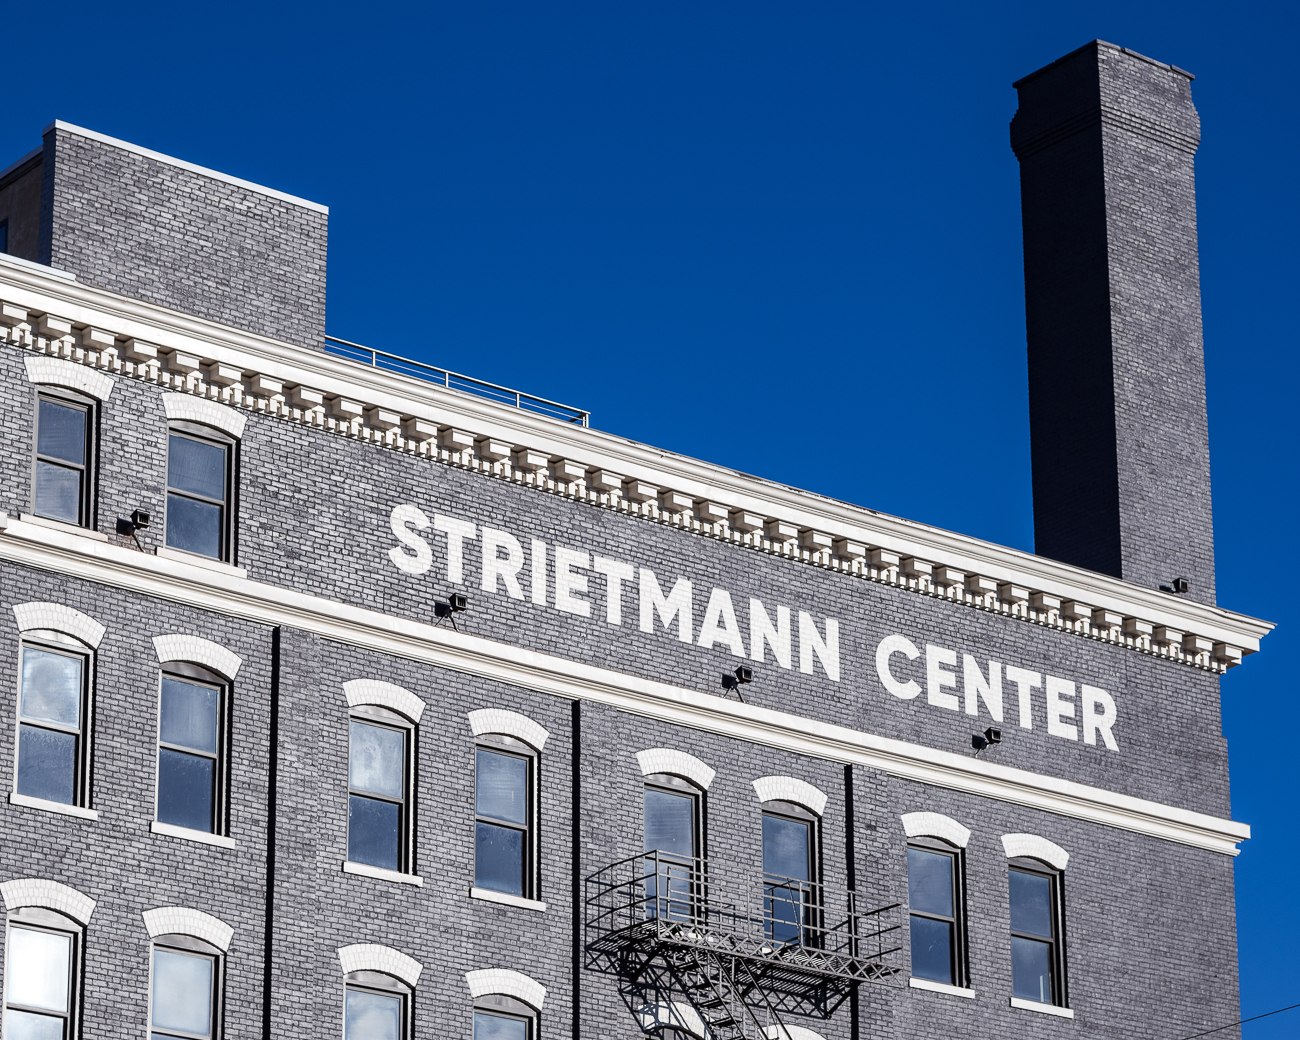 The Strietmann Center is an 88,000-square-foot office building at the corner of 12th Street and Central Parkway in Over-the-Rhine. It was originally built in 1899 for the Strietmann Biscuit Company along the Miami and Erie Canal (now Central Parkway) due to the business' booming success. Peg Wyant purchased the building in 2016 and transformed it into an office building for prospective tenants. As of publishing this, floors are still being leased. ADDRESS: 235 W. 12th Street (45202) / Image: Phil Armstrong, Cincinnati Refined // Published: 3.9.18